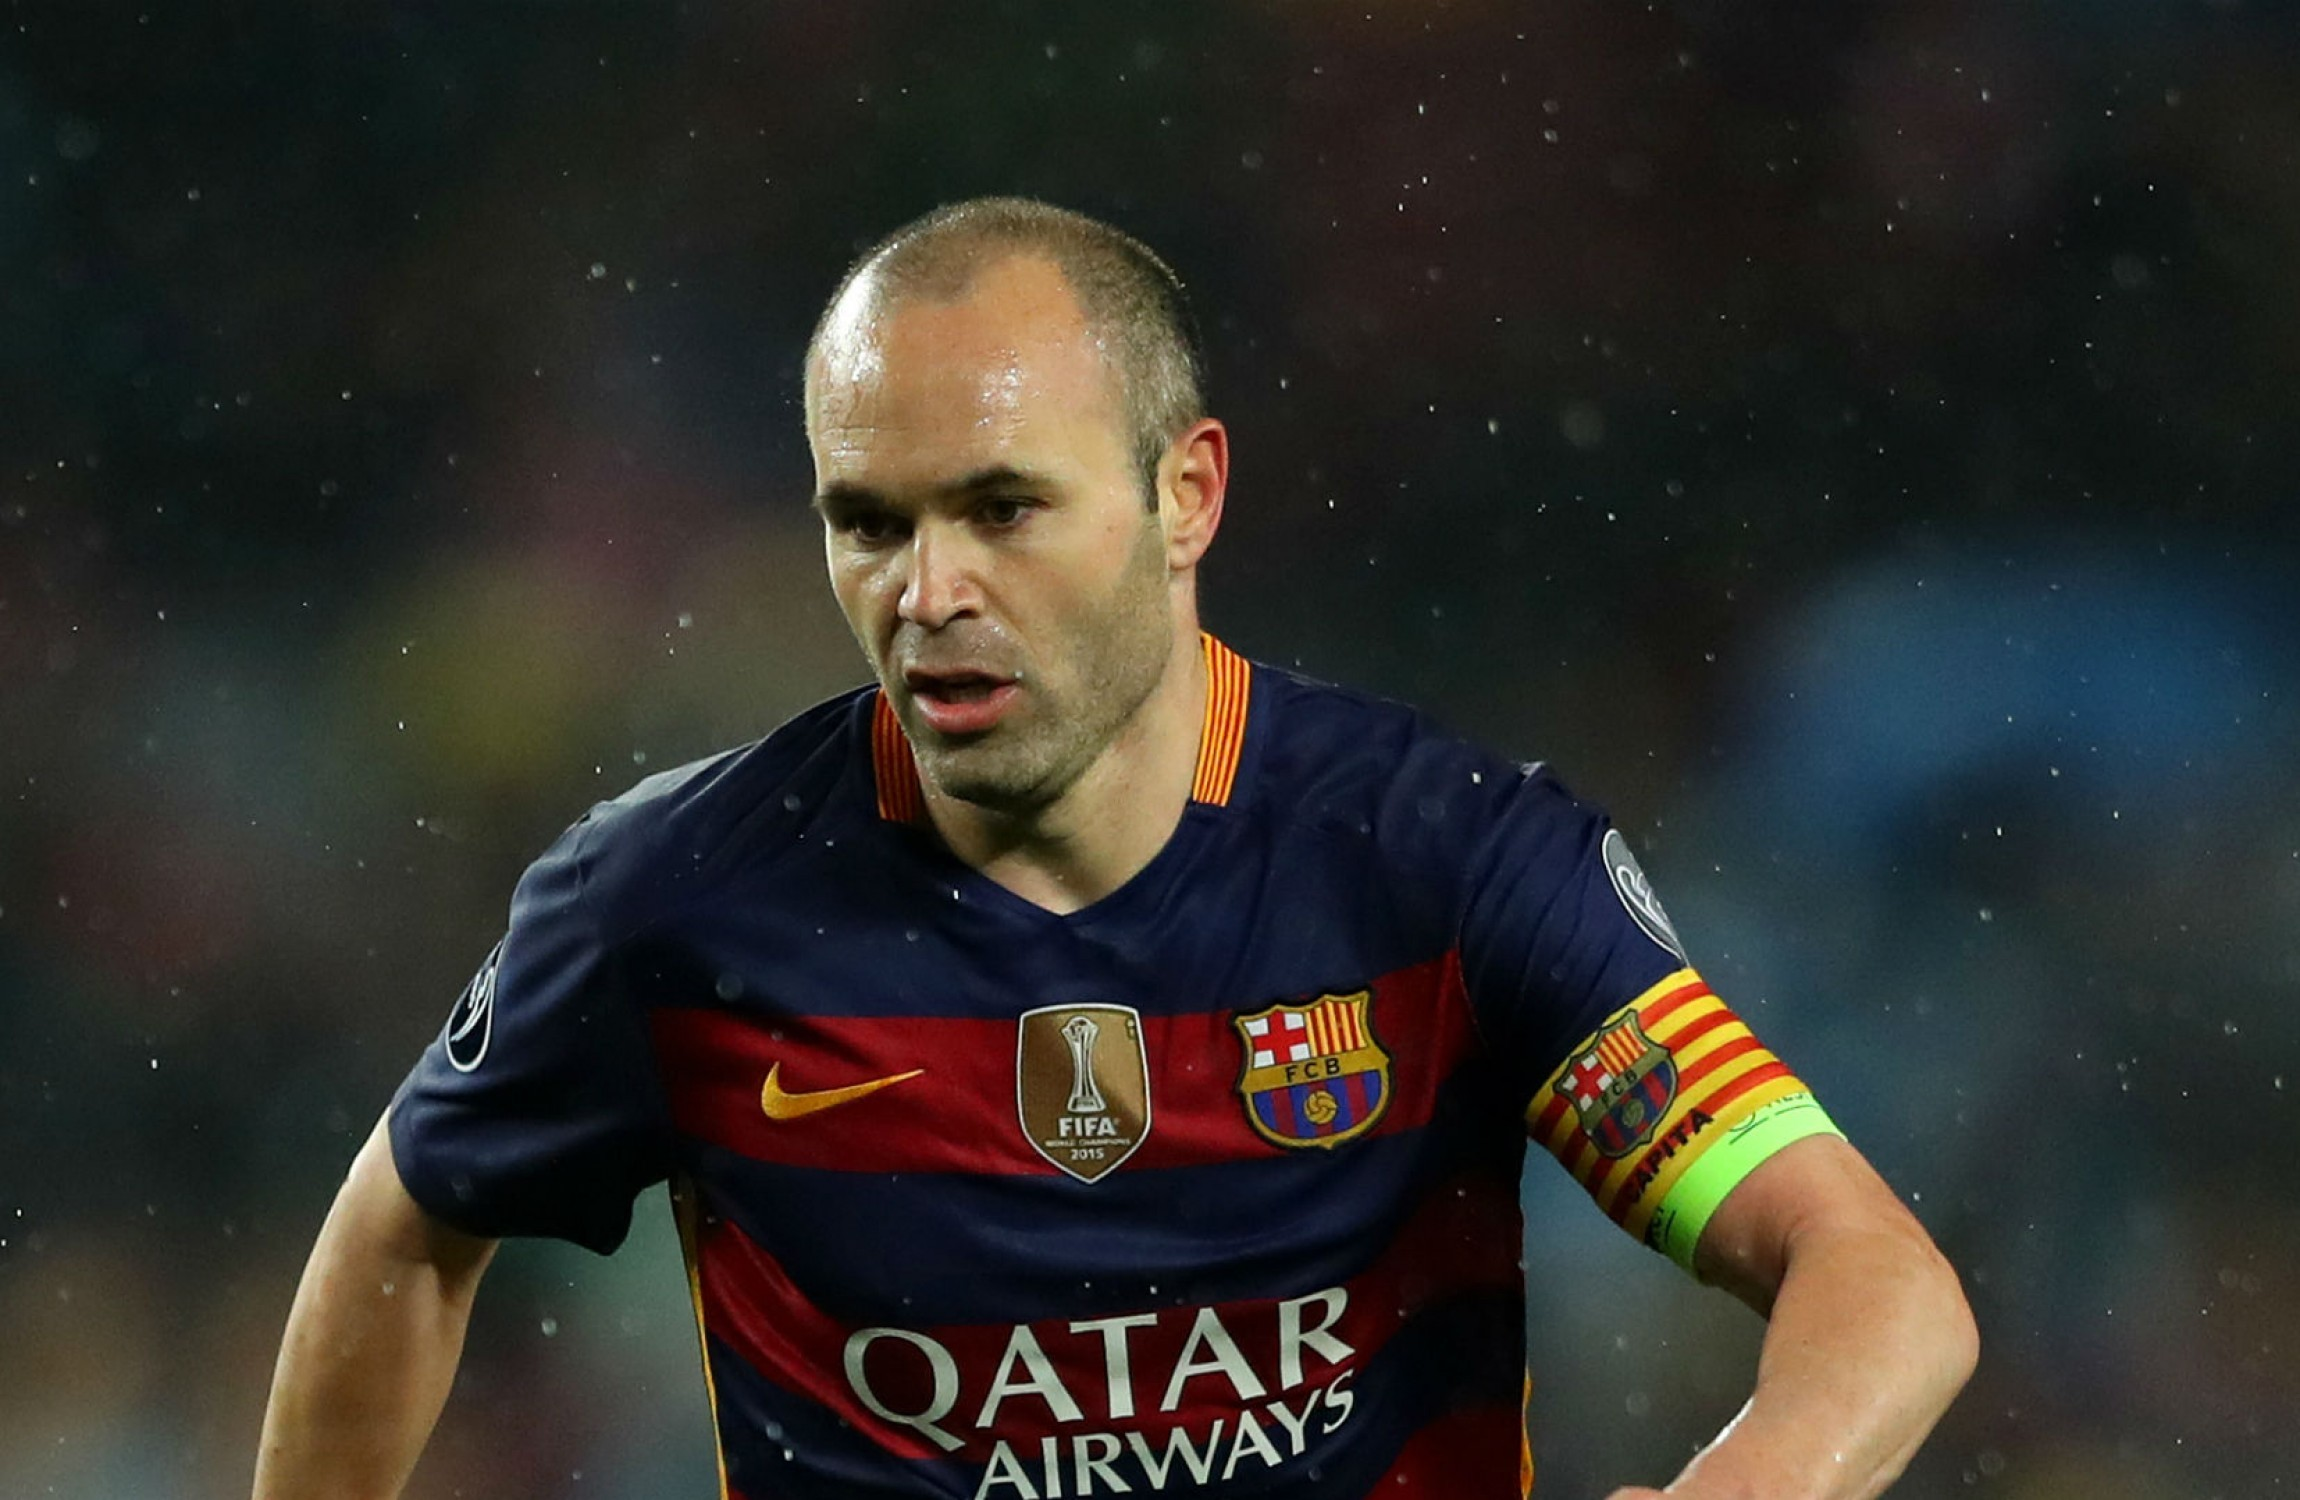 It would be an injustice if Iniesta finishes his career without